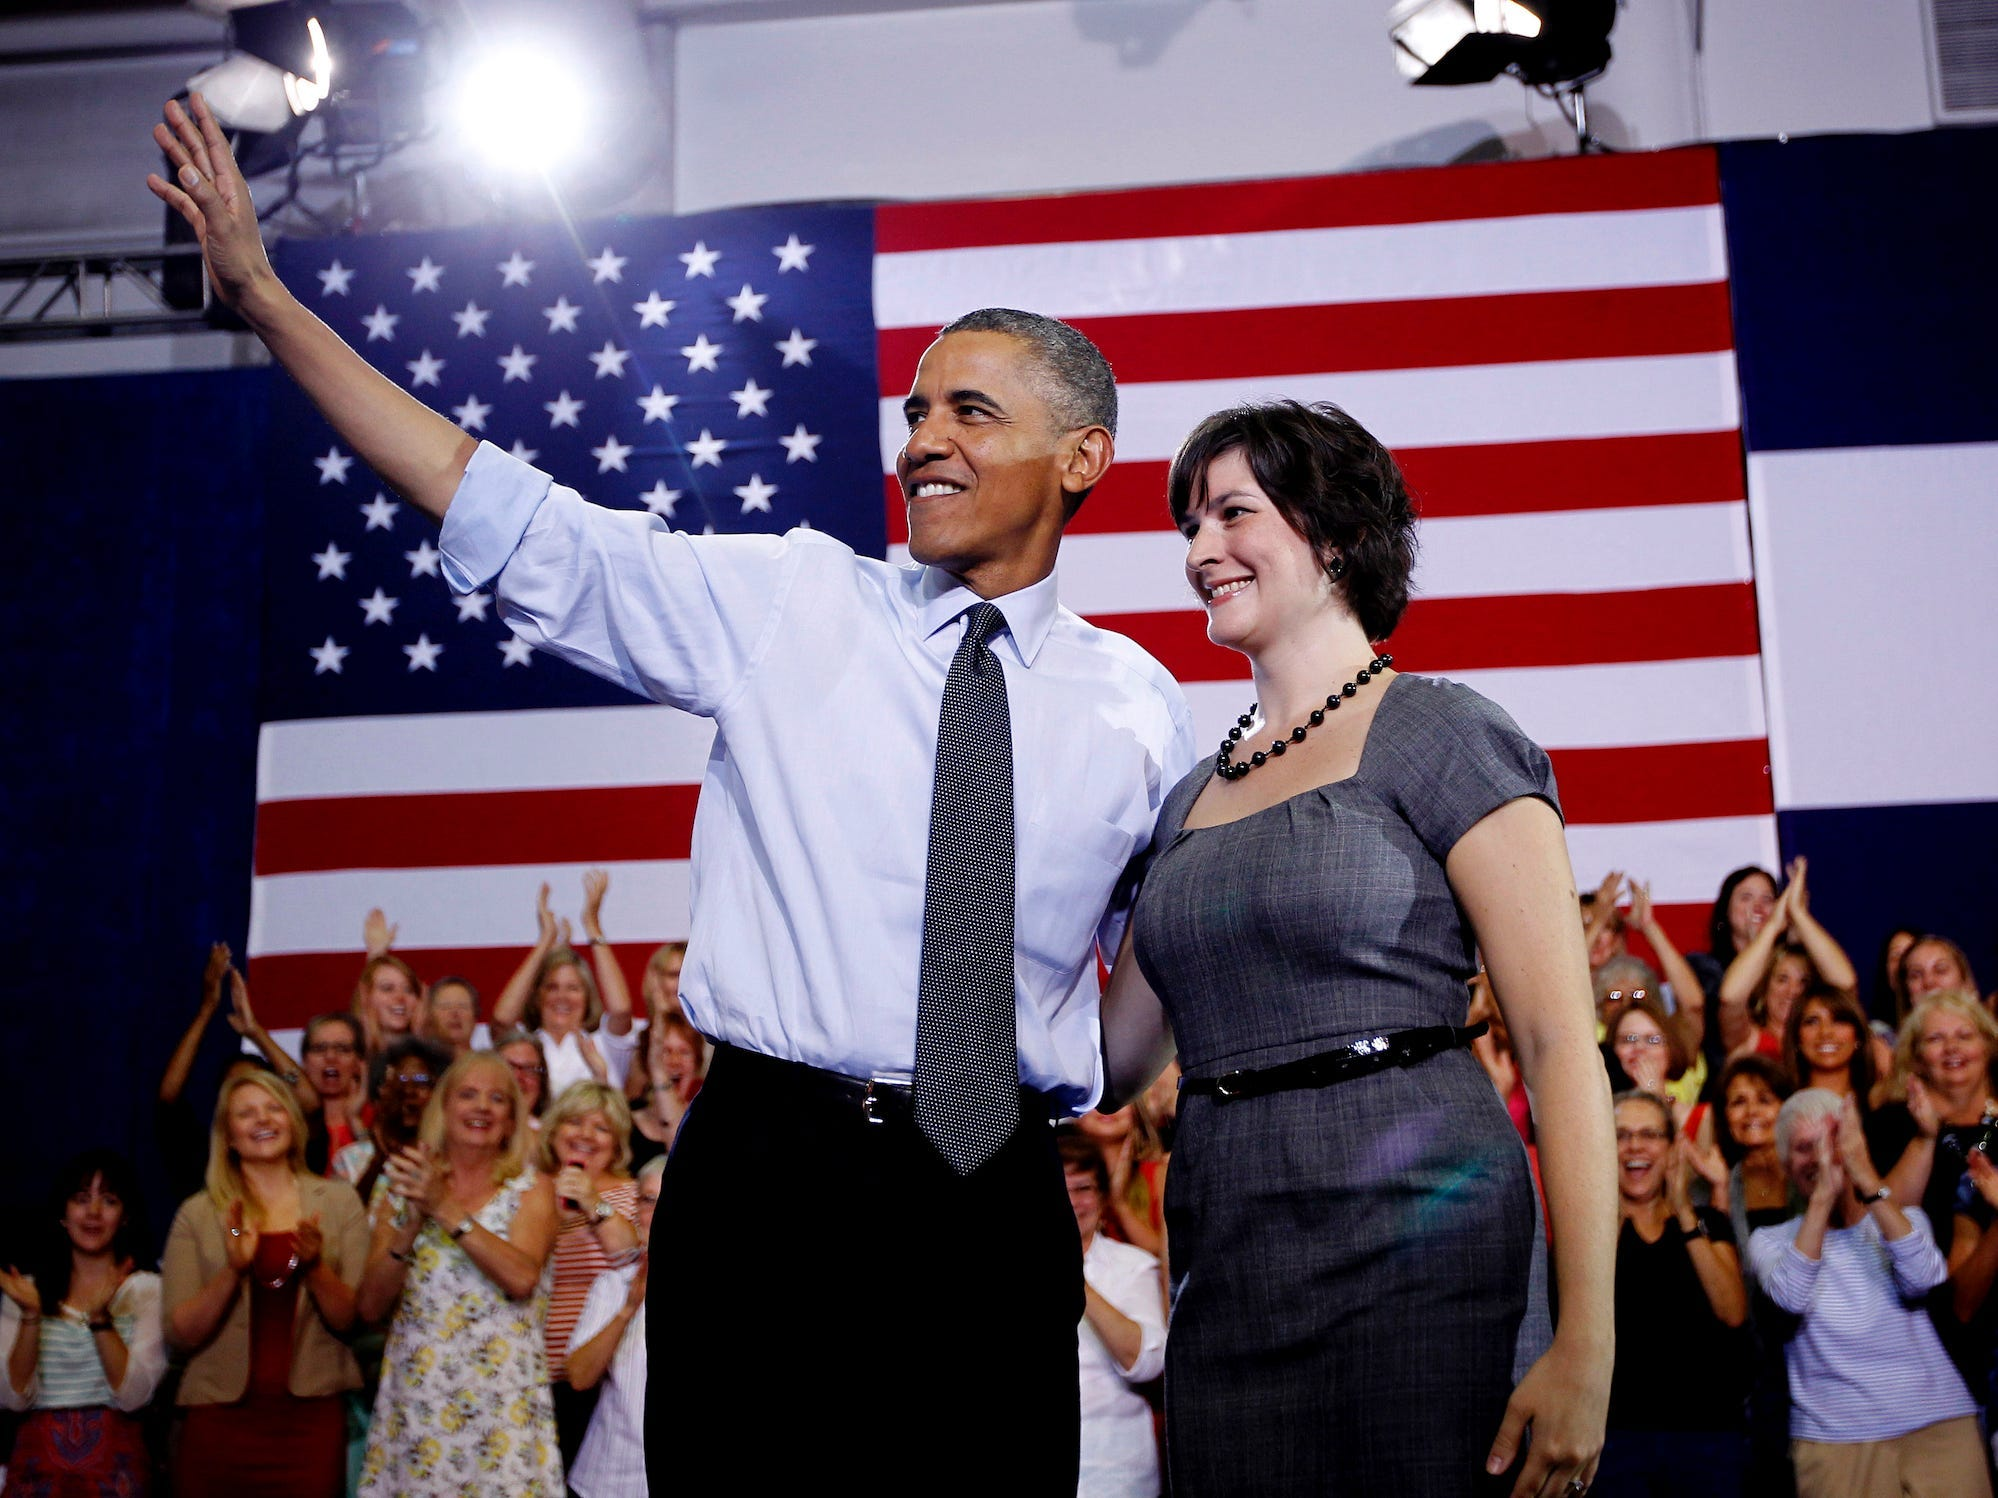 President Barack Obama, accompanied by Sandra Fluke, waves at a campaign event at the University of Colorado Auraria Events Center, Wednesday, Aug. 8, 2012,